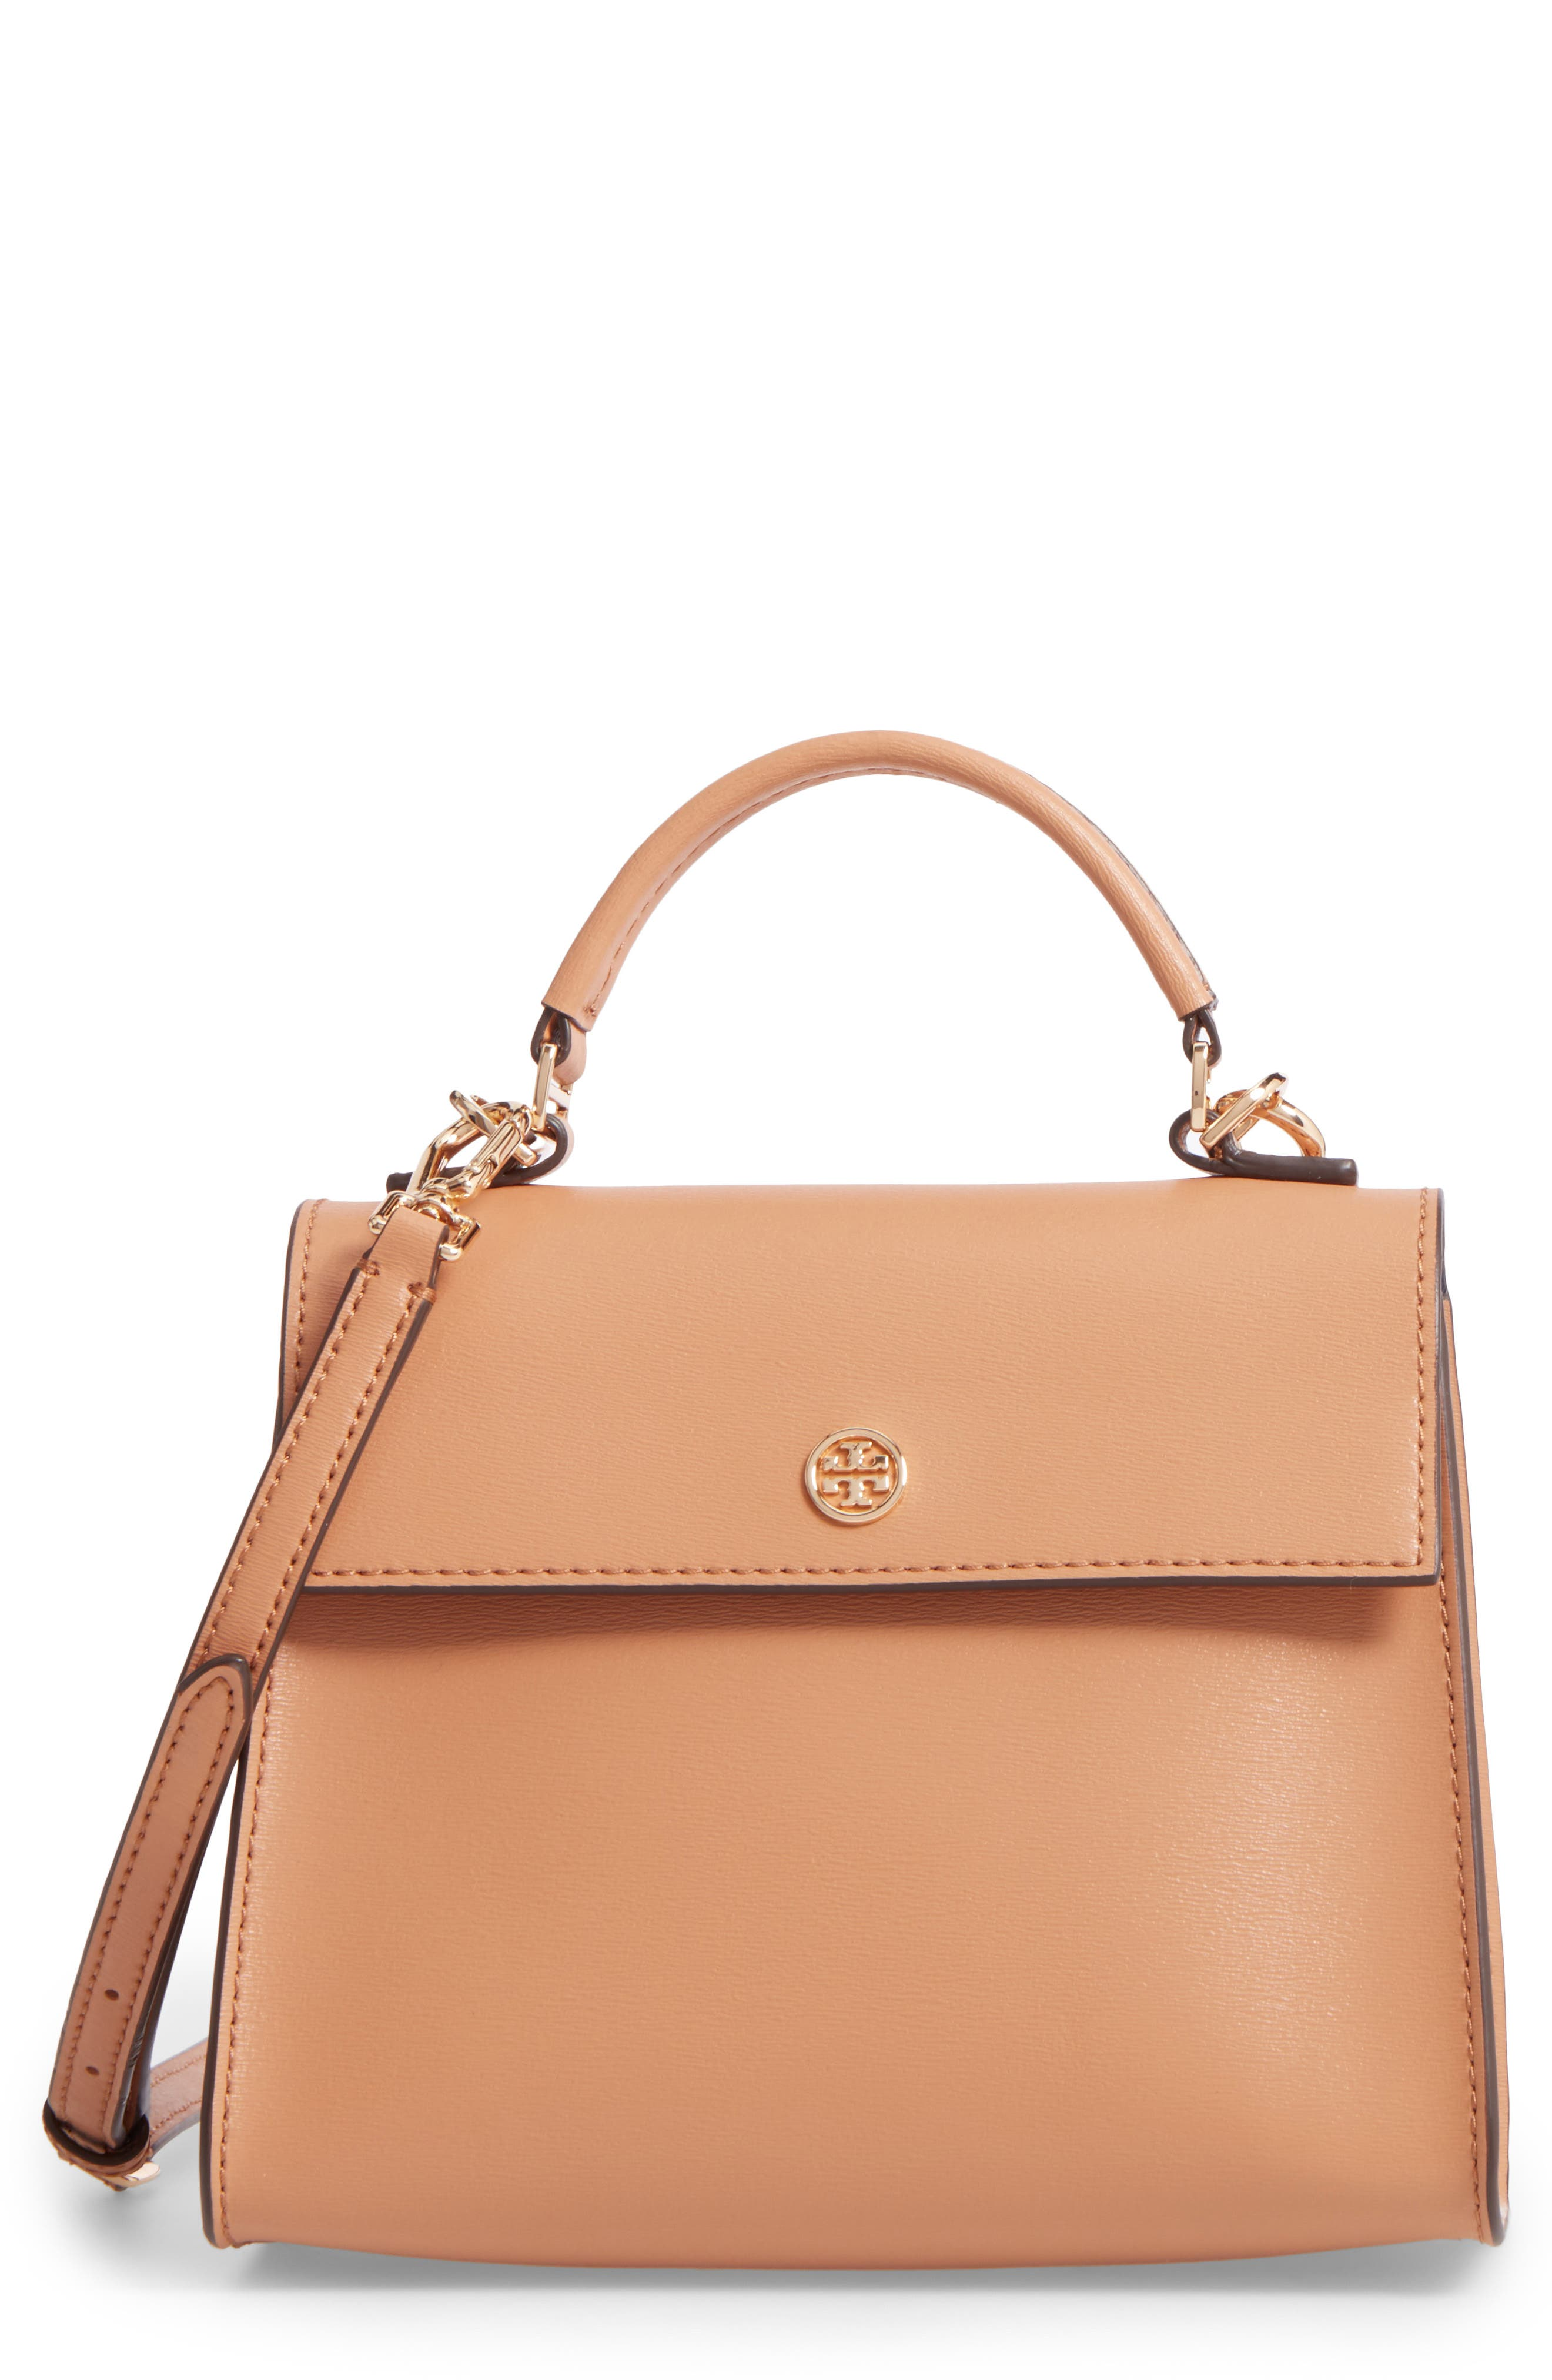 TORY BURCH Small Parker Leather Top Handle Satchel, Main, color, 250